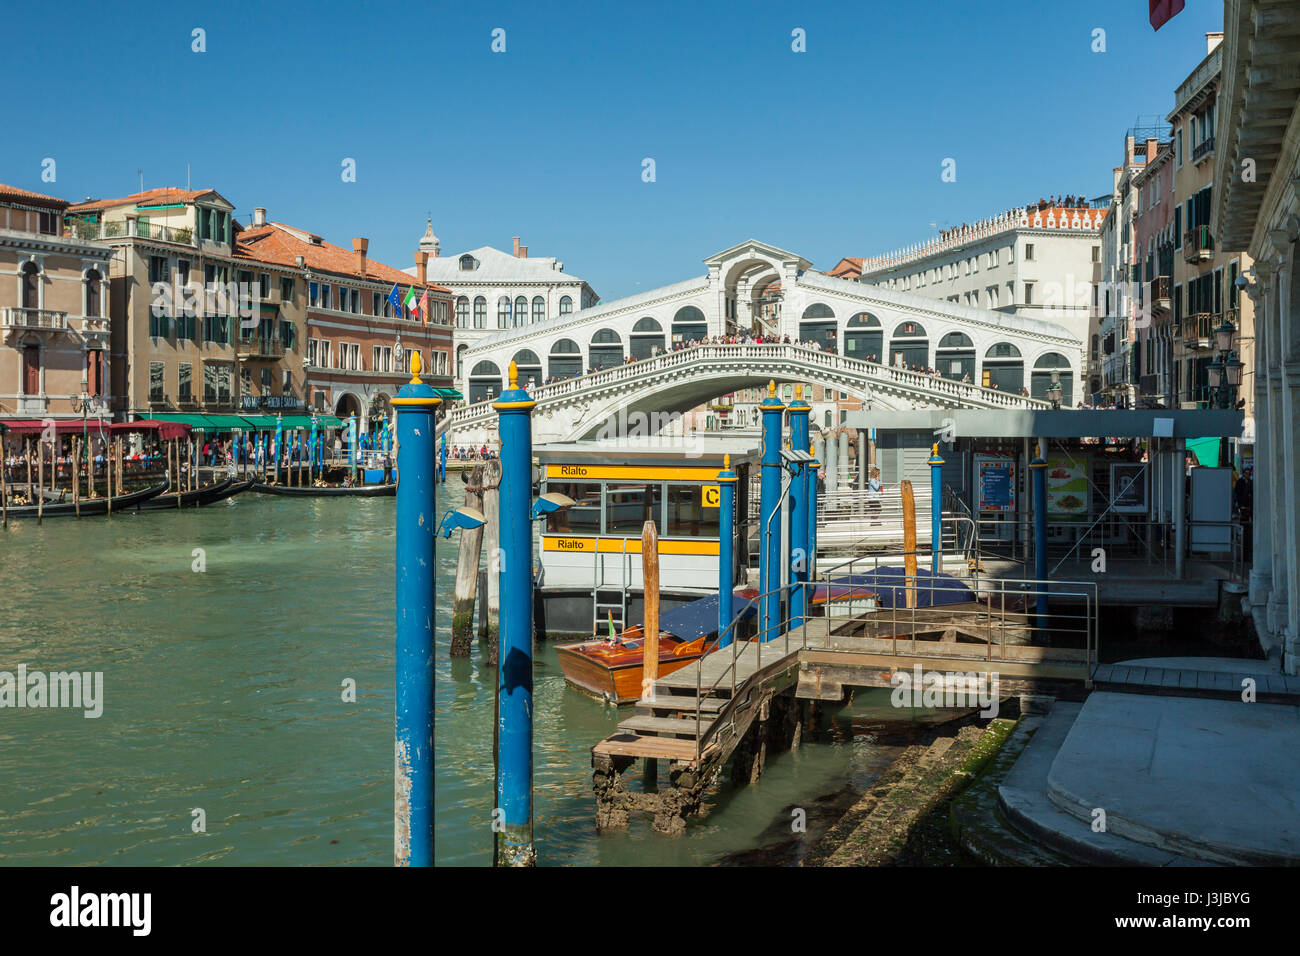 Spring afternoon on Grand Canal in Venice. Rialto Bridge in the distance. - Stock Image